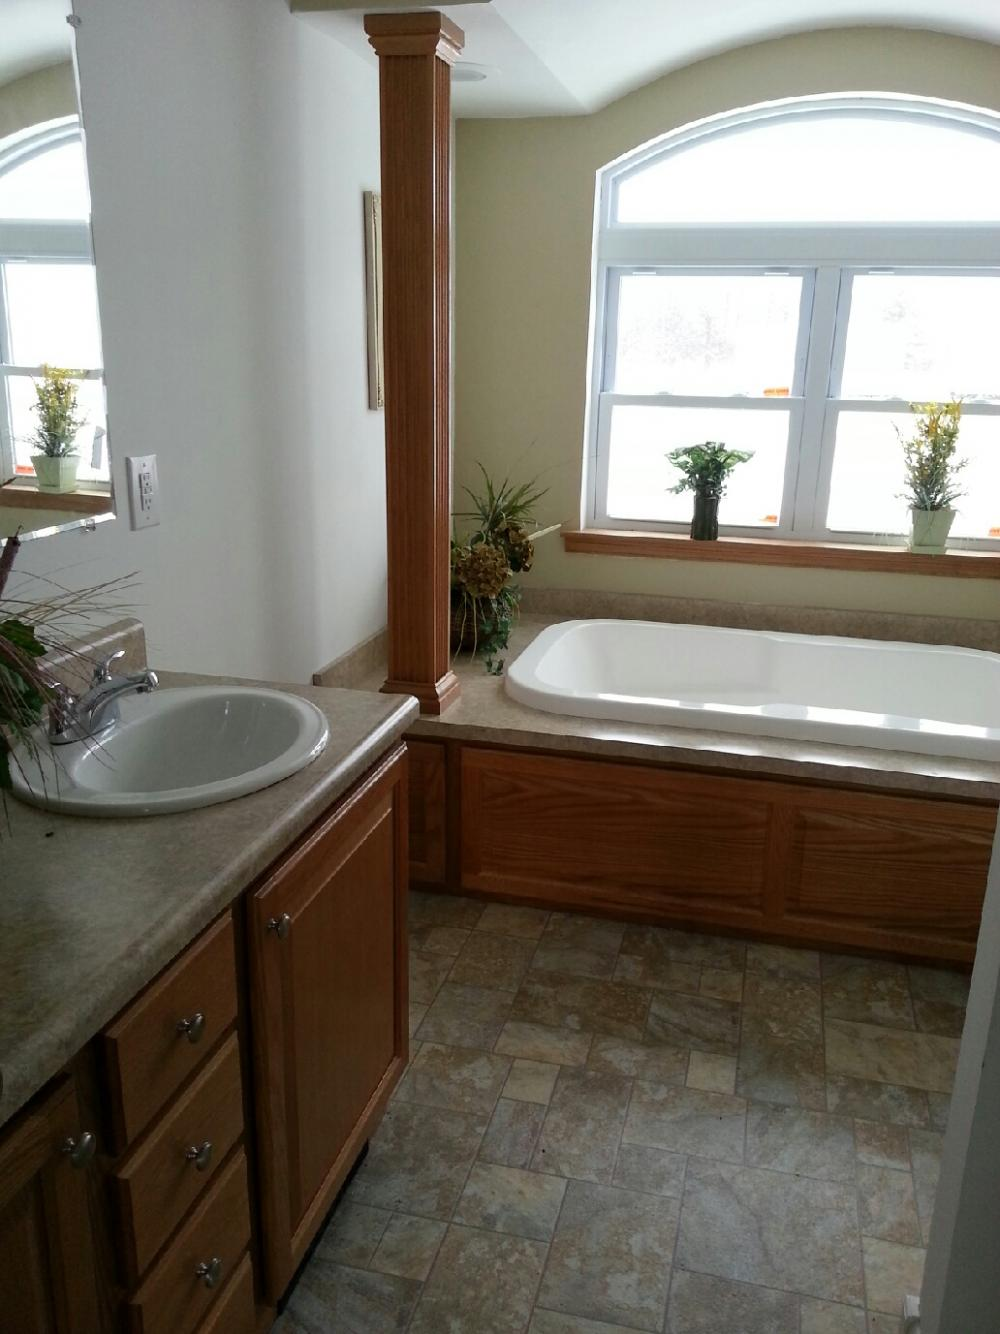 Master Bath has two Sinks, Tub and Walk in Shower.